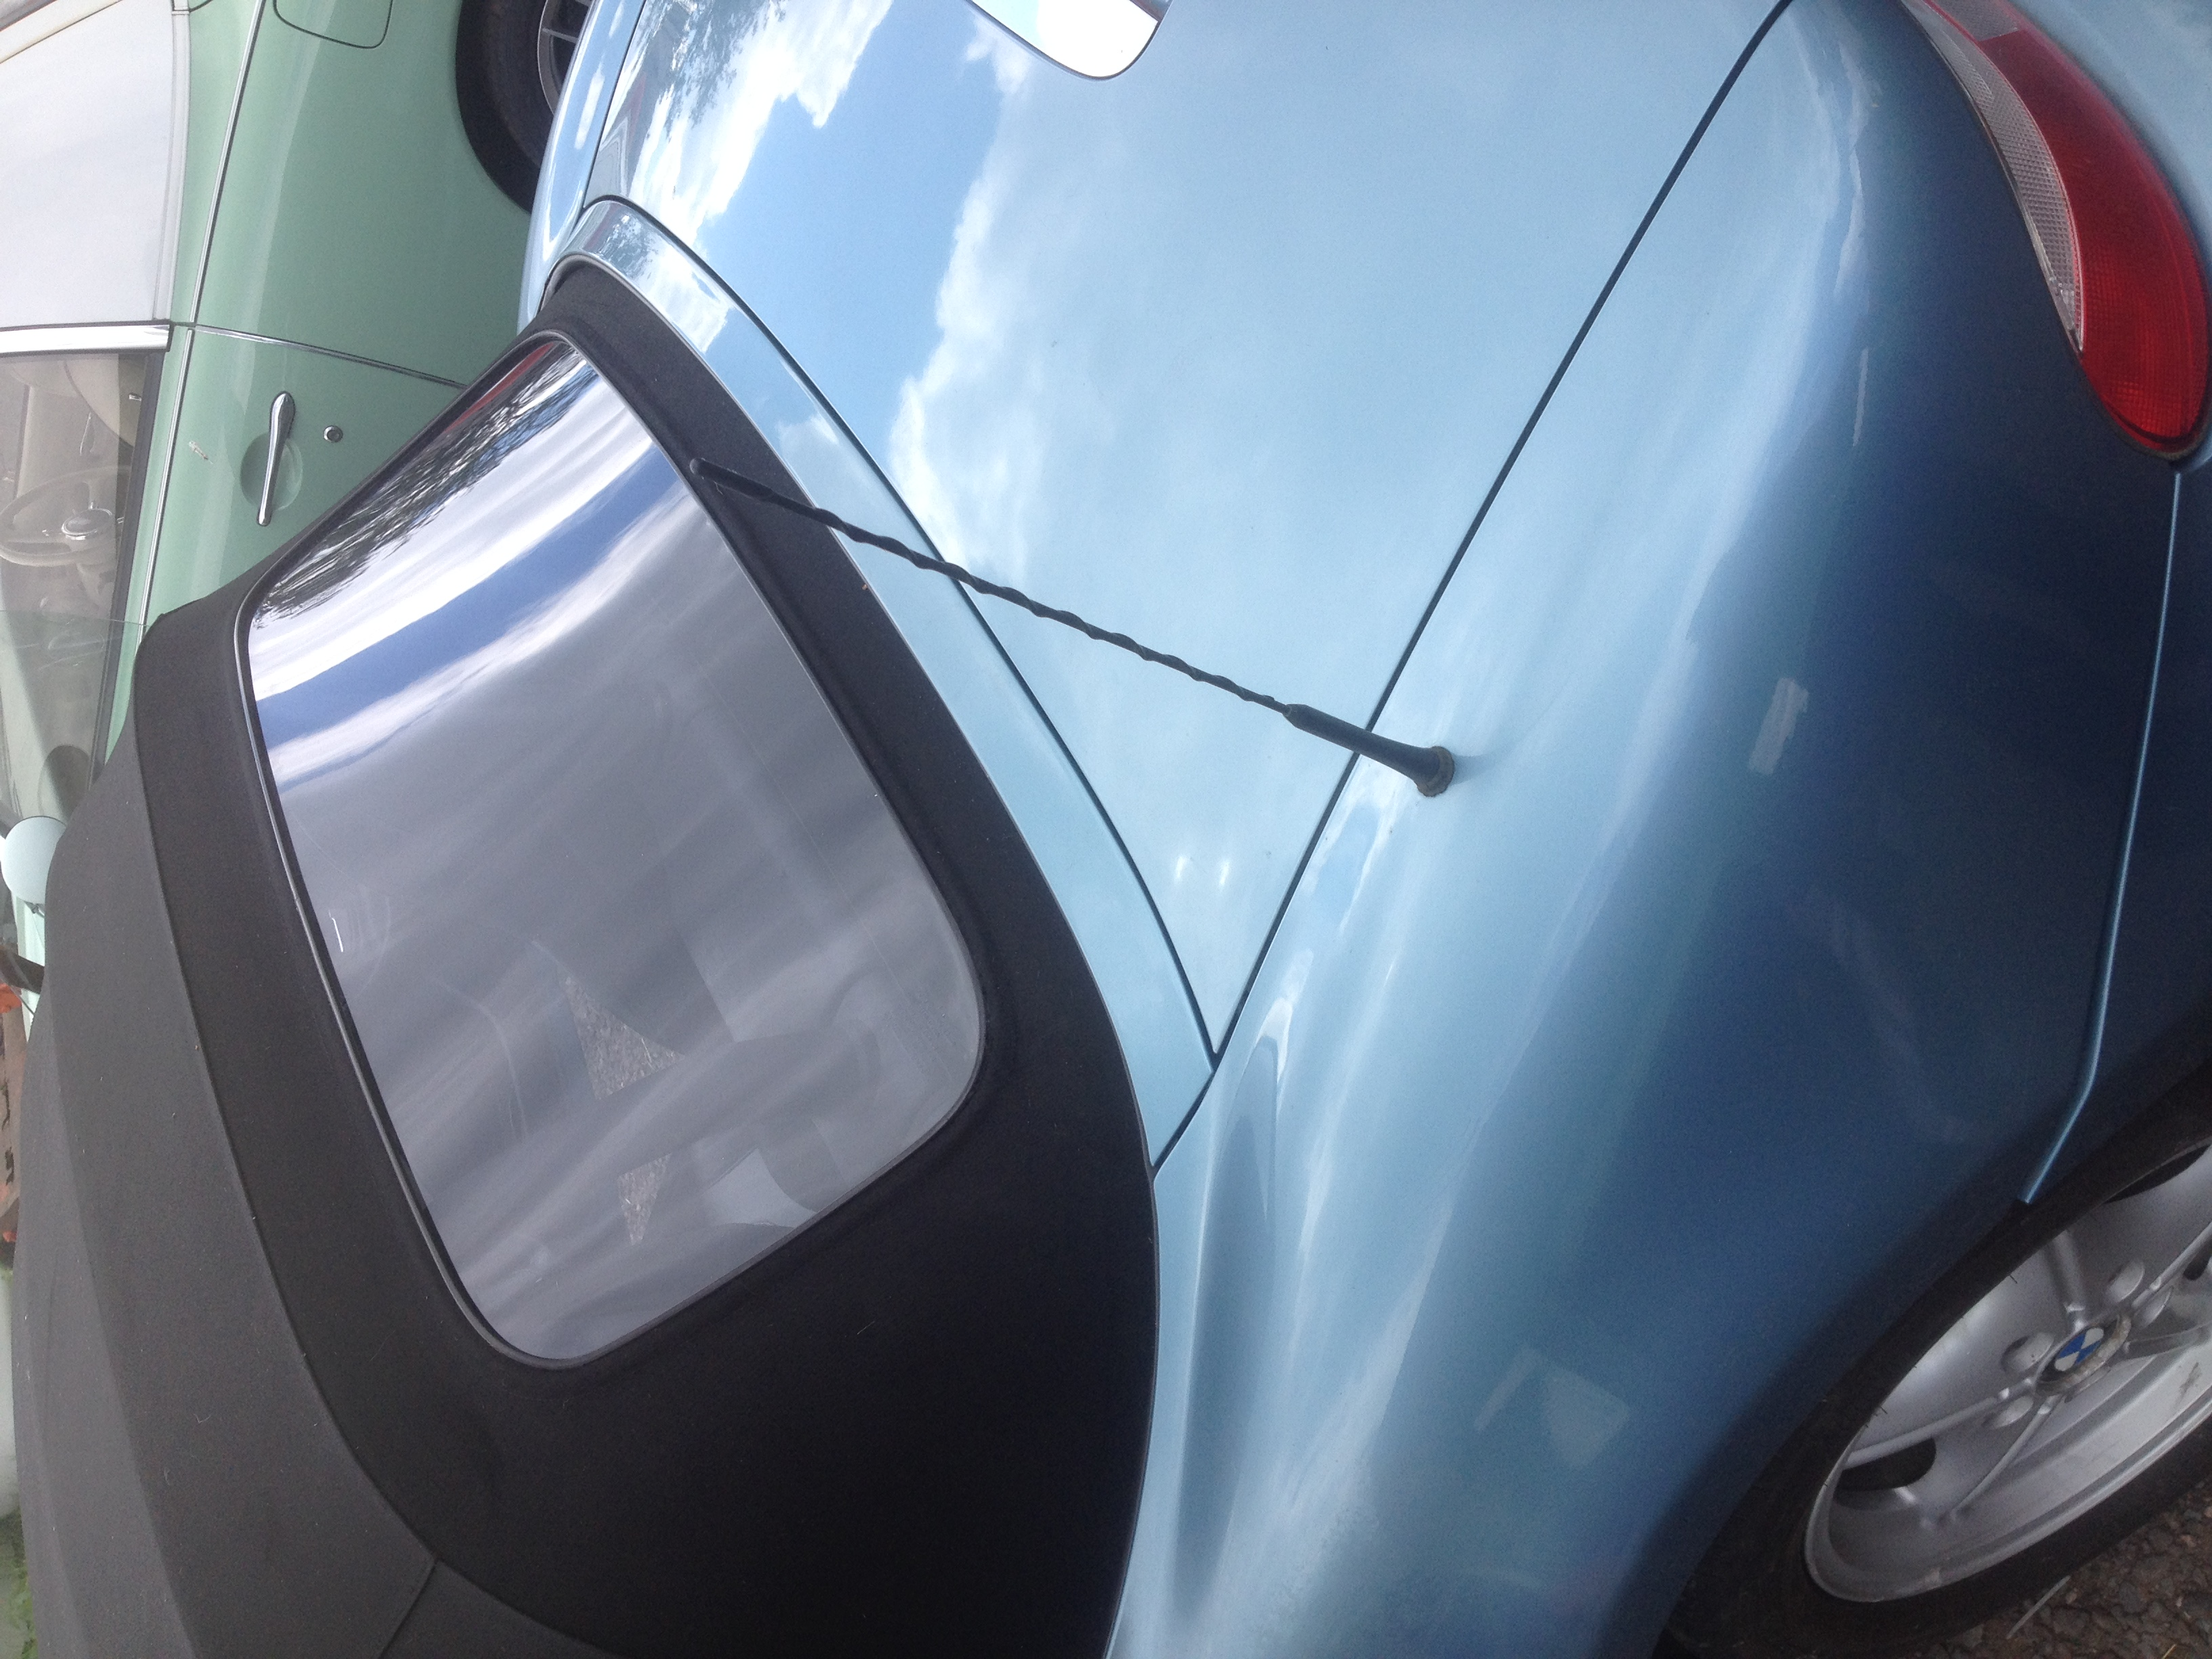 BMW Z4 rear plastic window